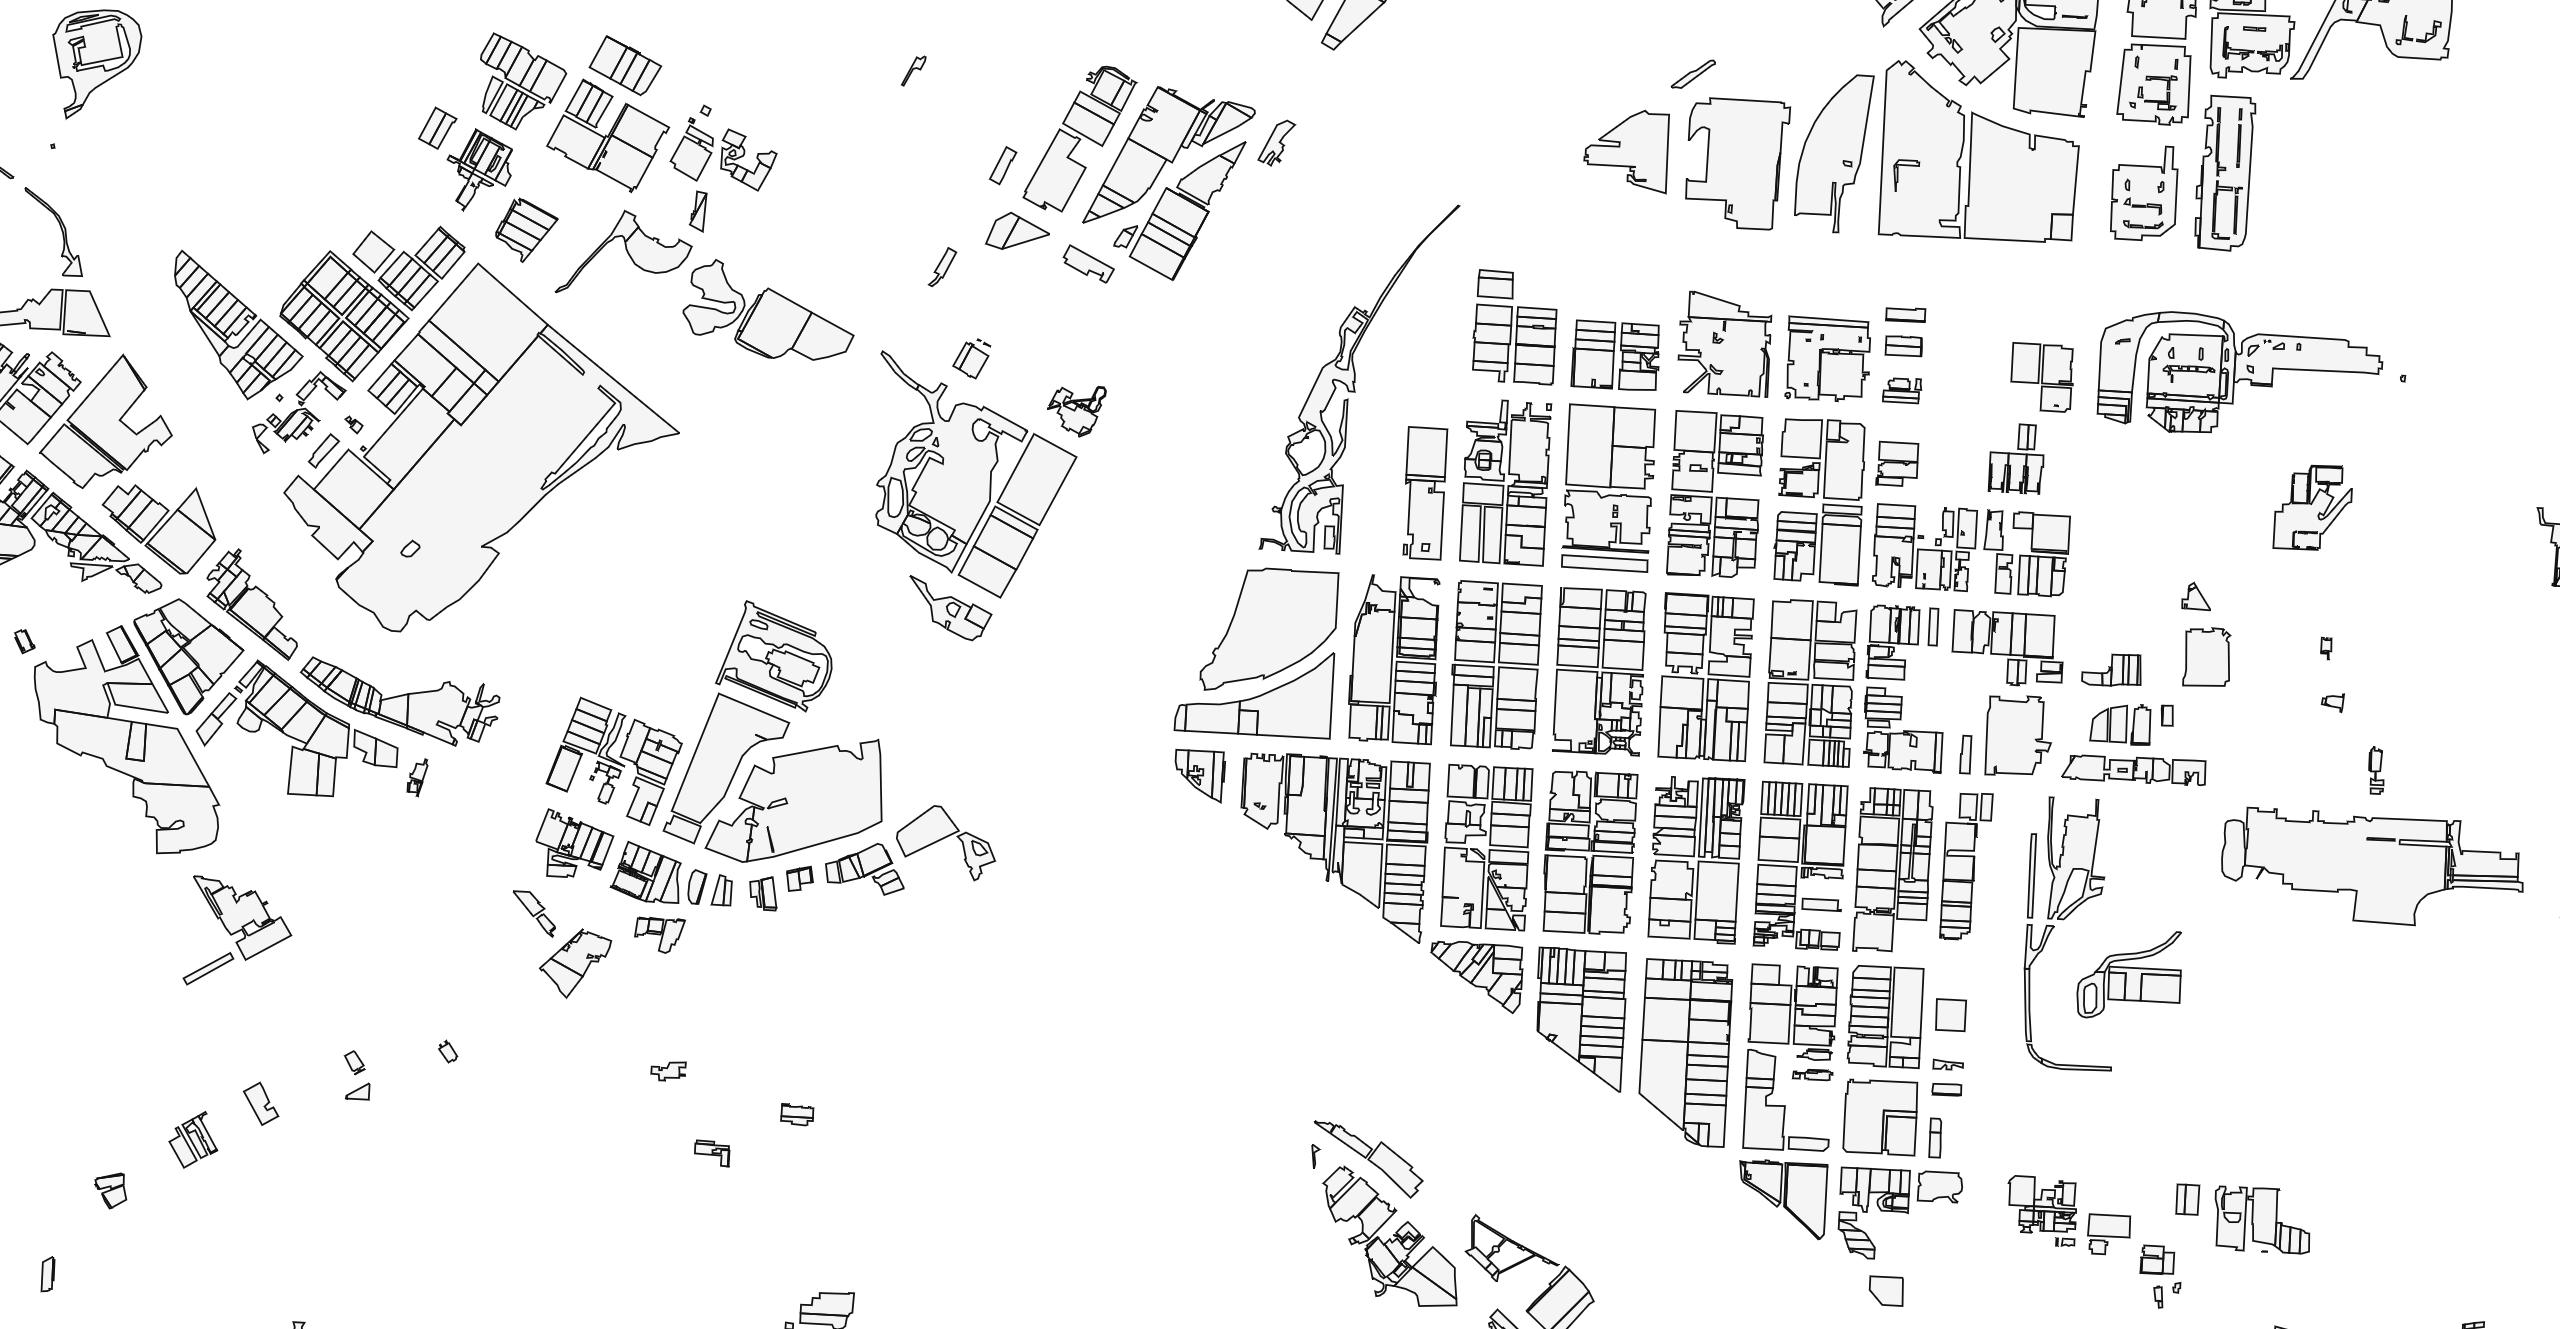 Animating Urban Growth via the ArcMap Time Slider